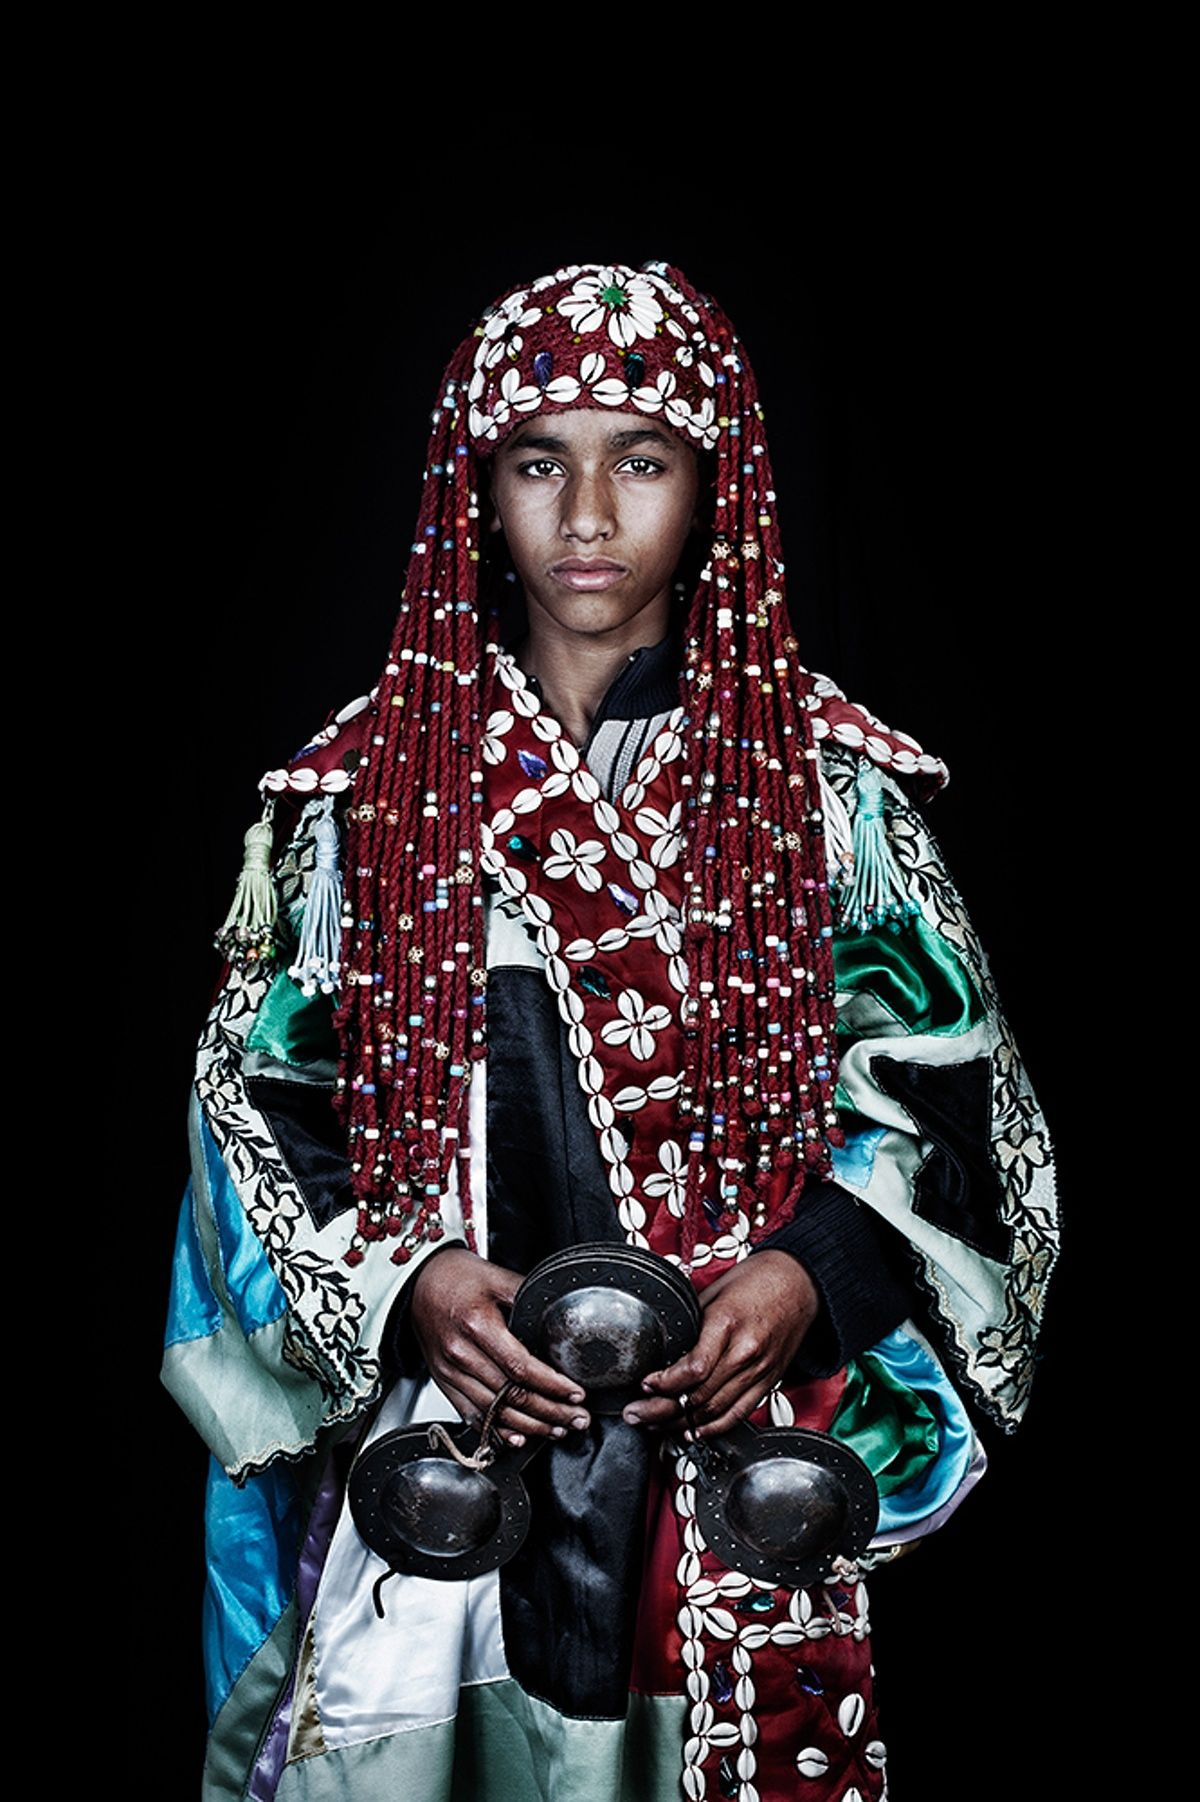 Leila Alaoui was a French-Moroccan photographer and video artist. For her series, The Moroccans, she travelled the country with her mobile photo studio to capture the ethnic and cultural diversity of Morocco. Leila was killed on assignment in Burkina Faso on 15 January